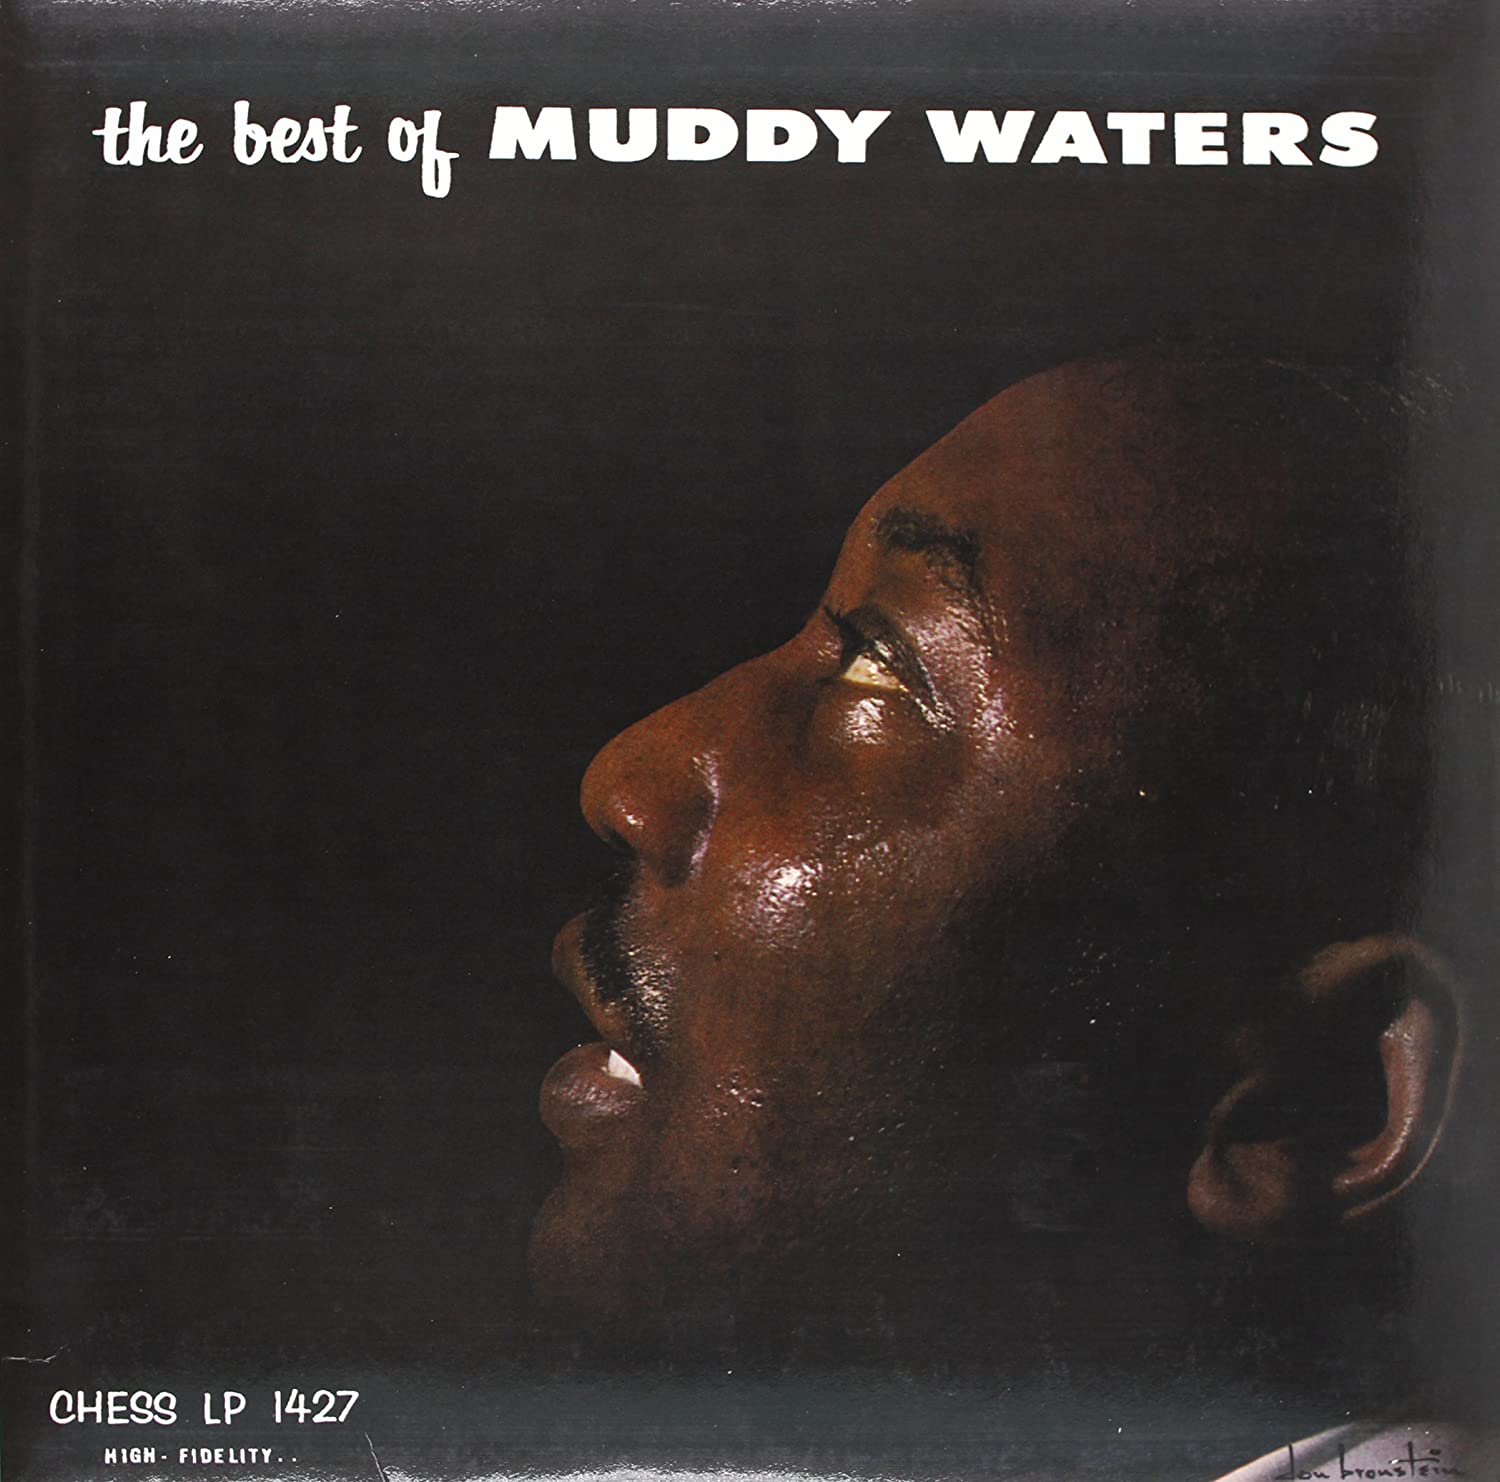 Best of Muddy Waters [12 inch Analog]                                                                                                                                                                                                                                                    <span class=